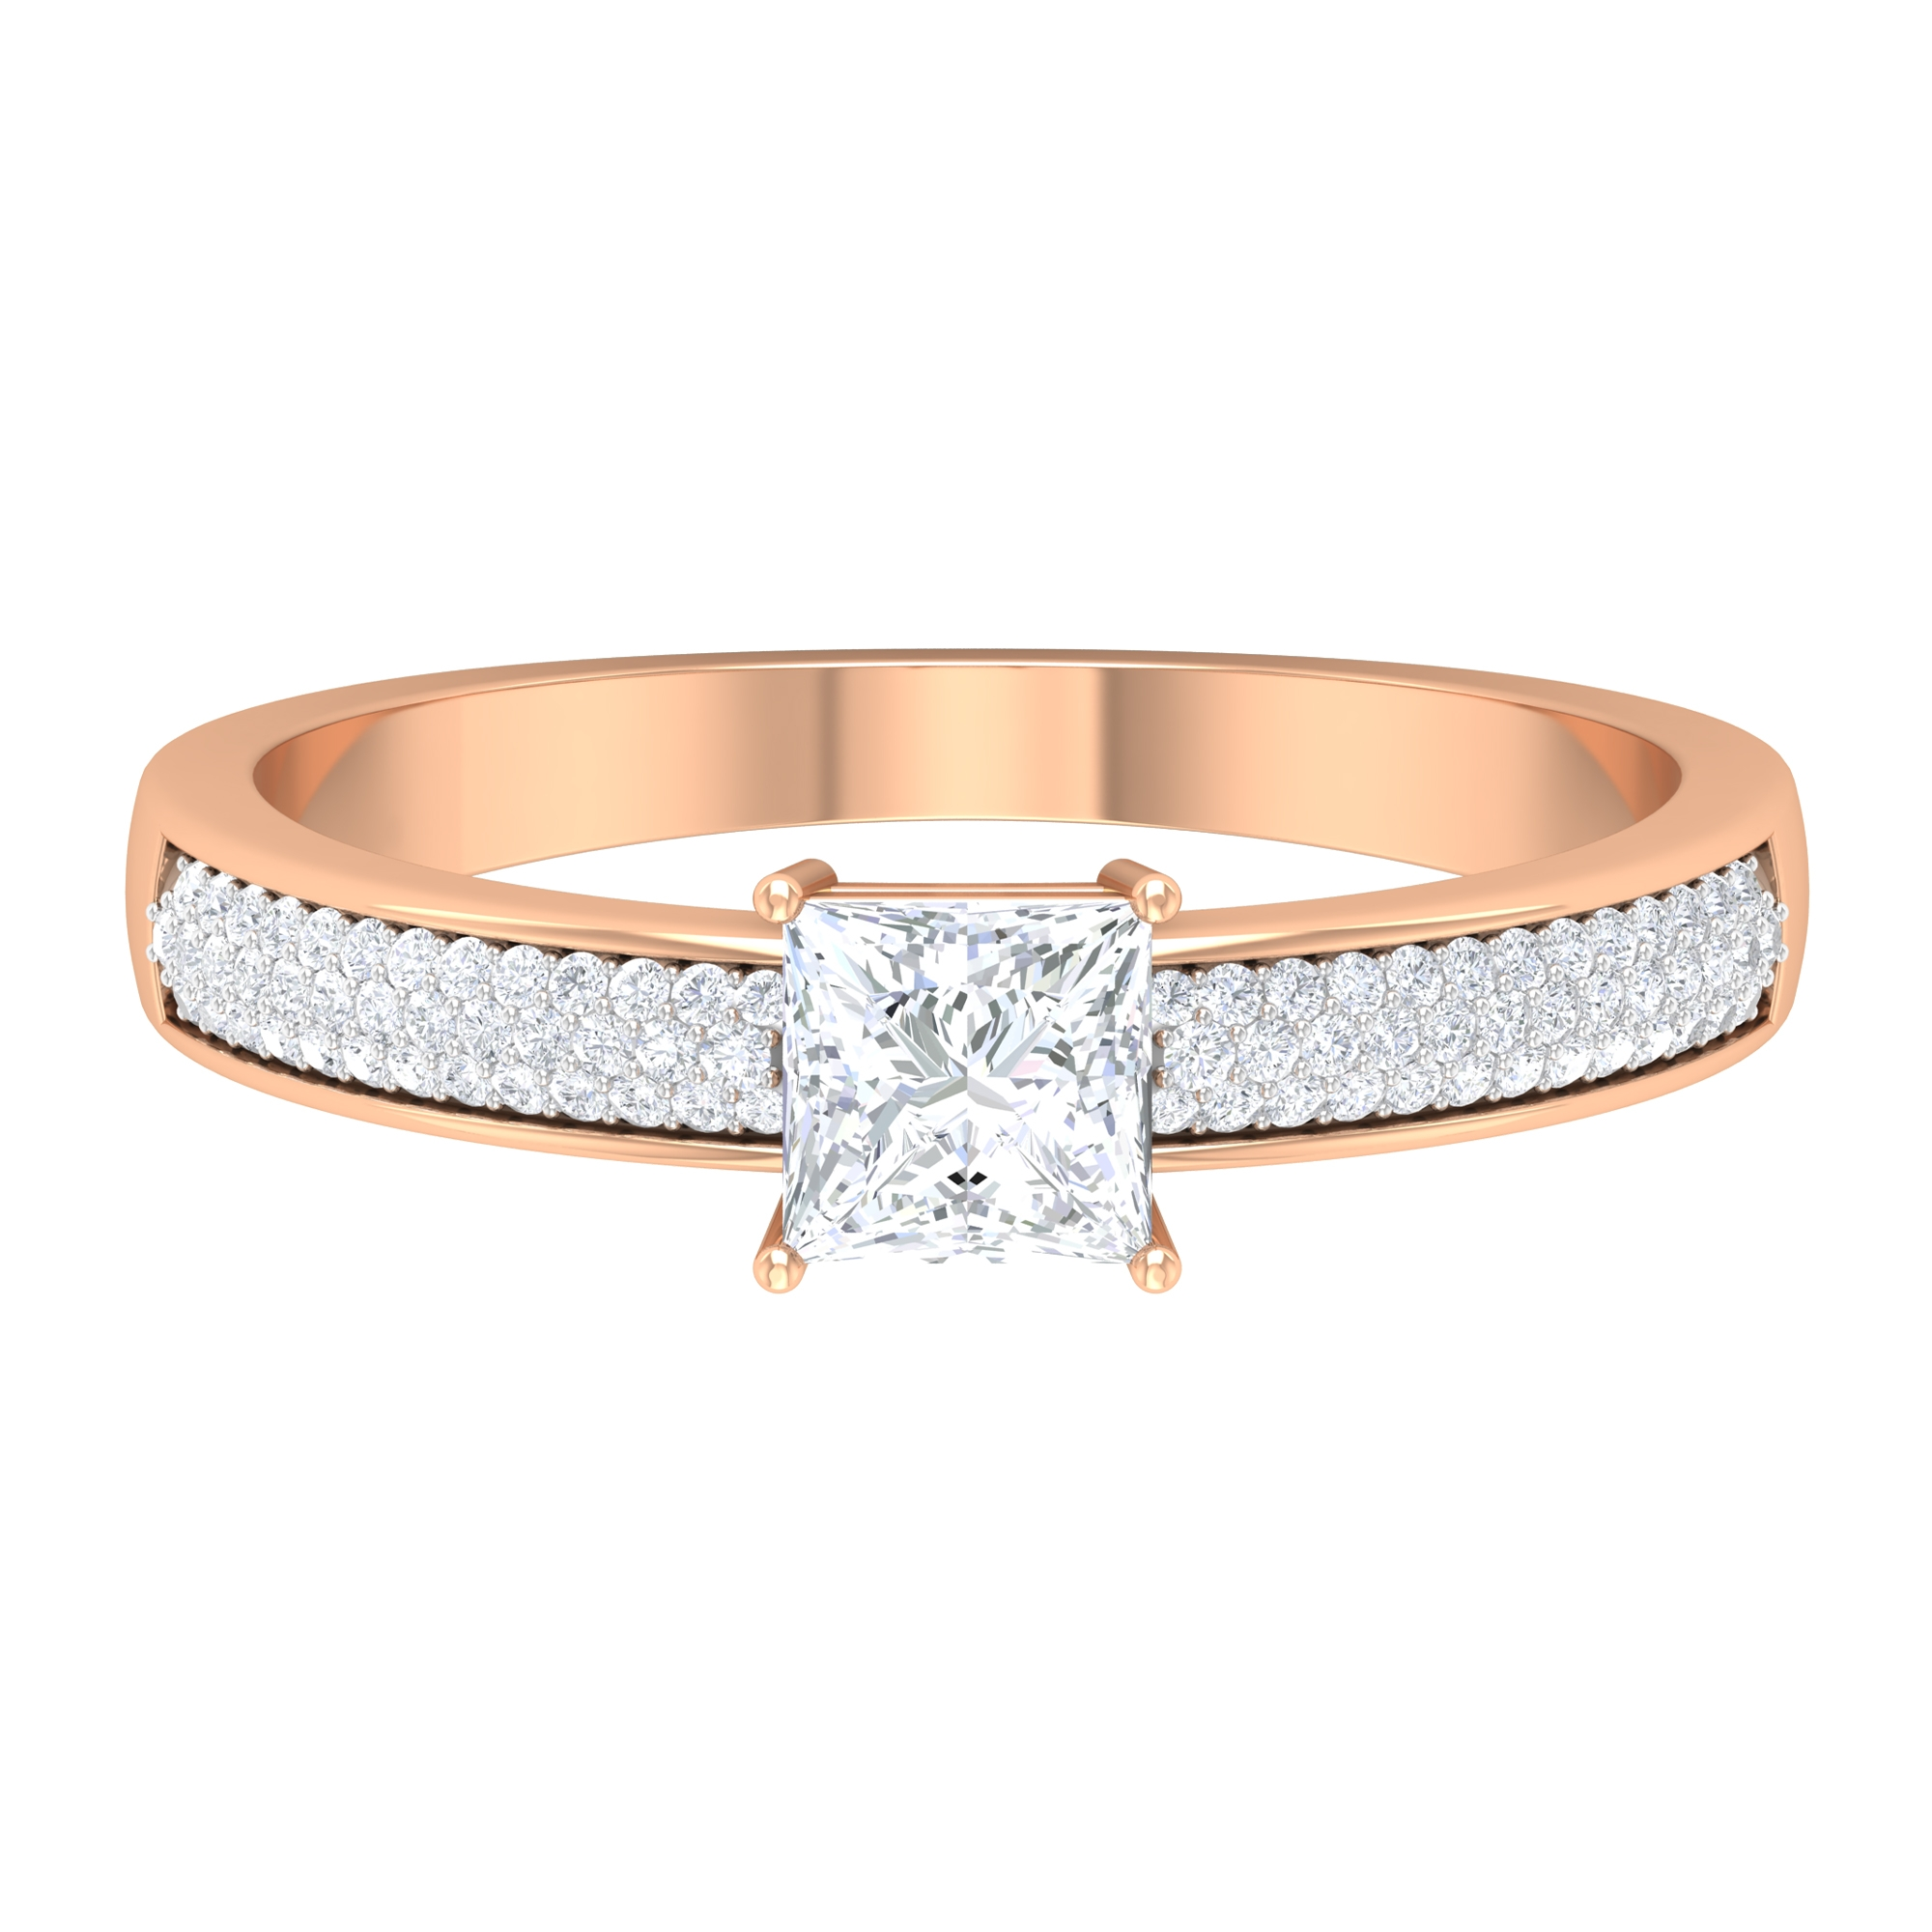 3/4 CT Princess Cut Diamond Solitaire Ring with Side Stones in 4 Prong Setting